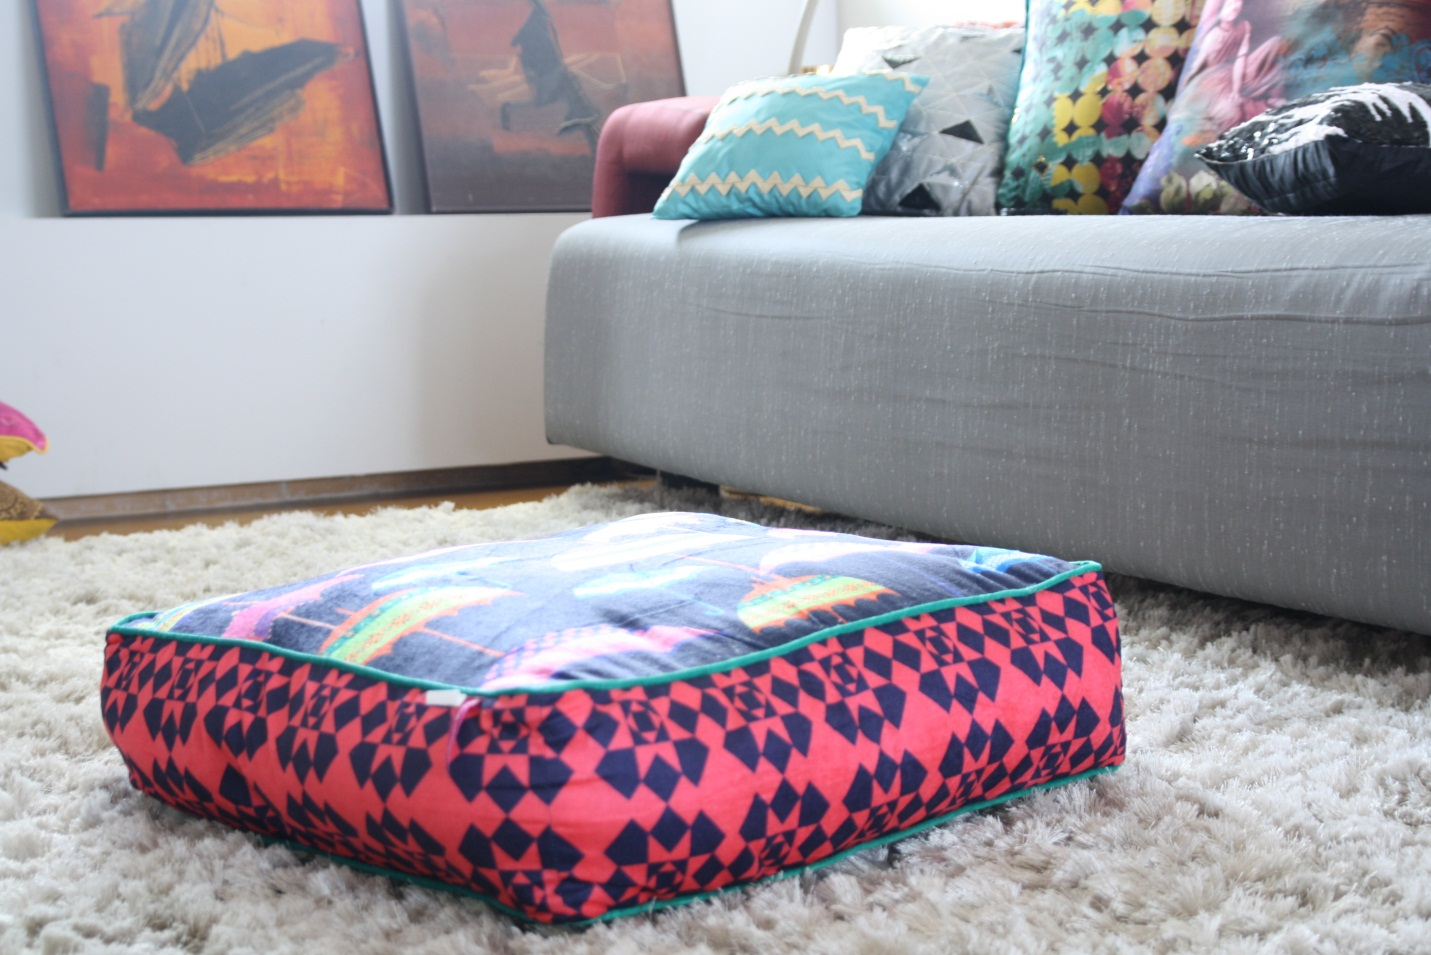 sofa seat cushions online india teachfamiliesorg With sofa seat cushion covers india